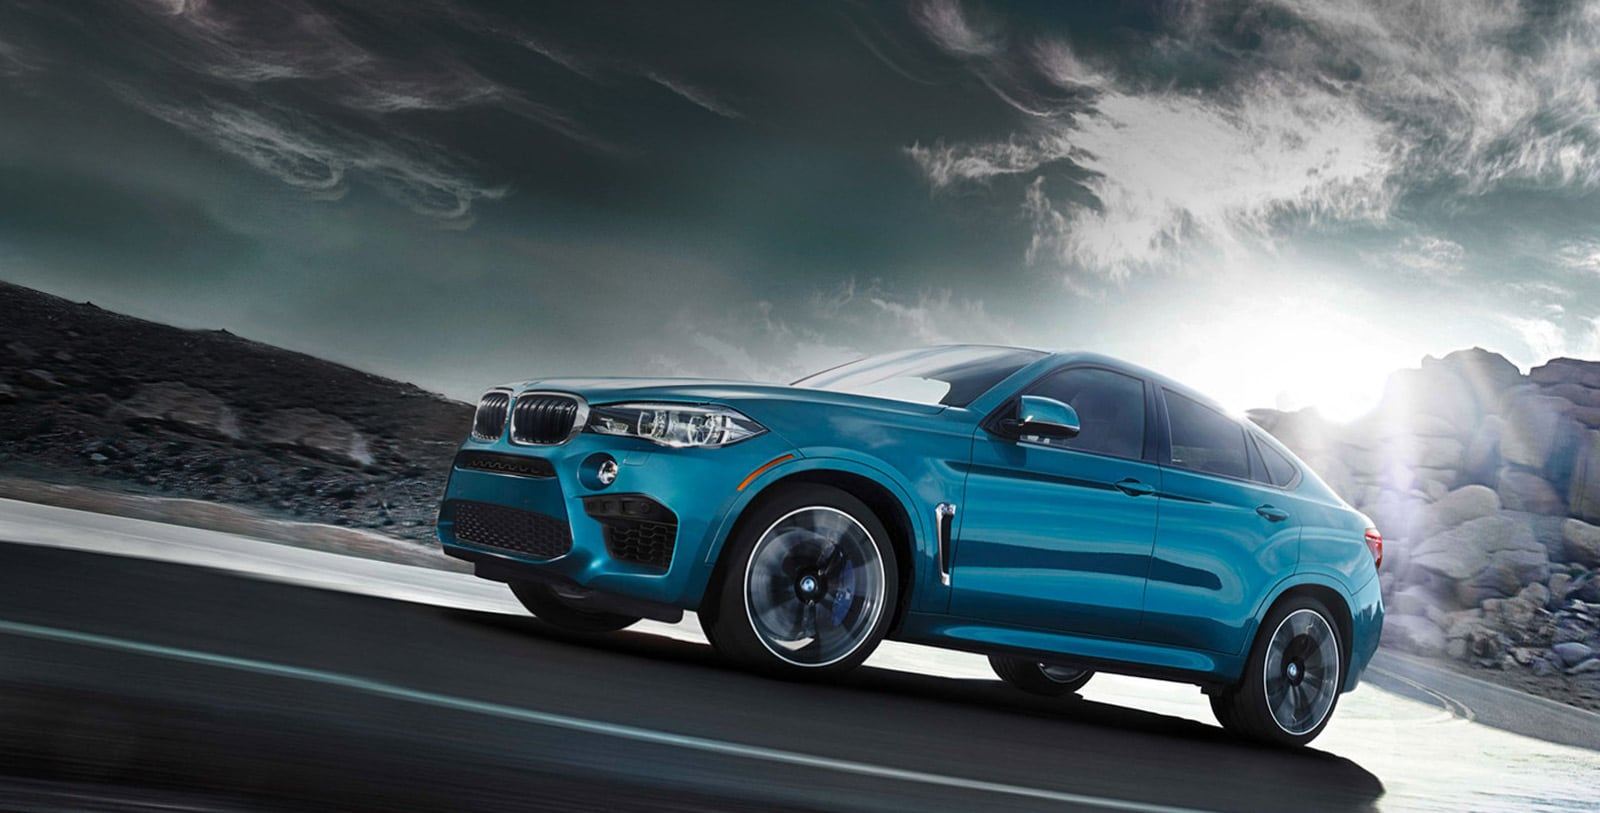 bmw x6 m sports activity coupe bmw usa. Black Bedroom Furniture Sets. Home Design Ideas